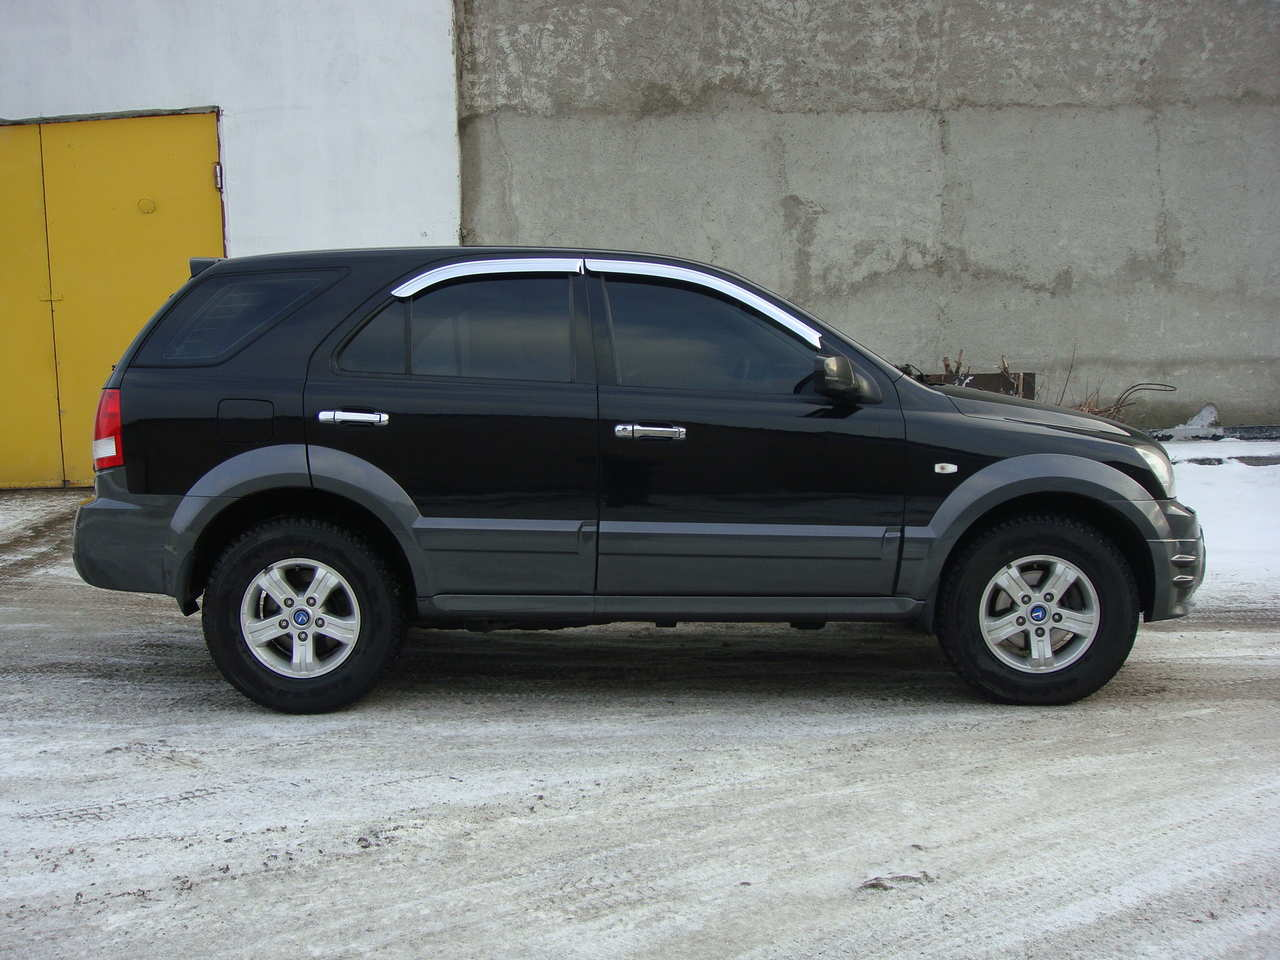 2002 kia sorento photos 2 5 diesel automatic for sale. Black Bedroom Furniture Sets. Home Design Ideas